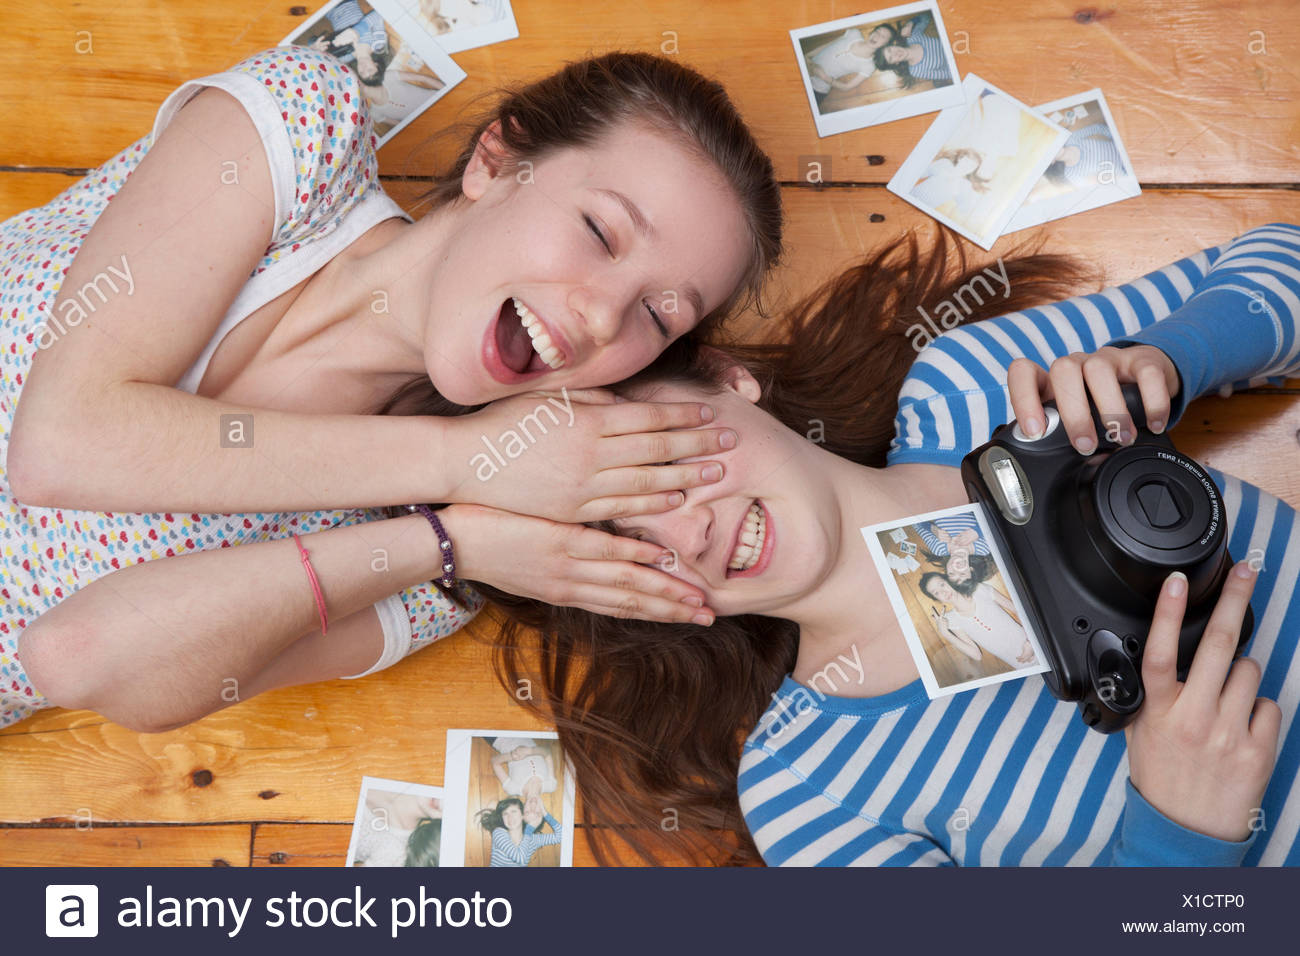 Girls lying on floor with camera, surrounded by photographs - Stock Image